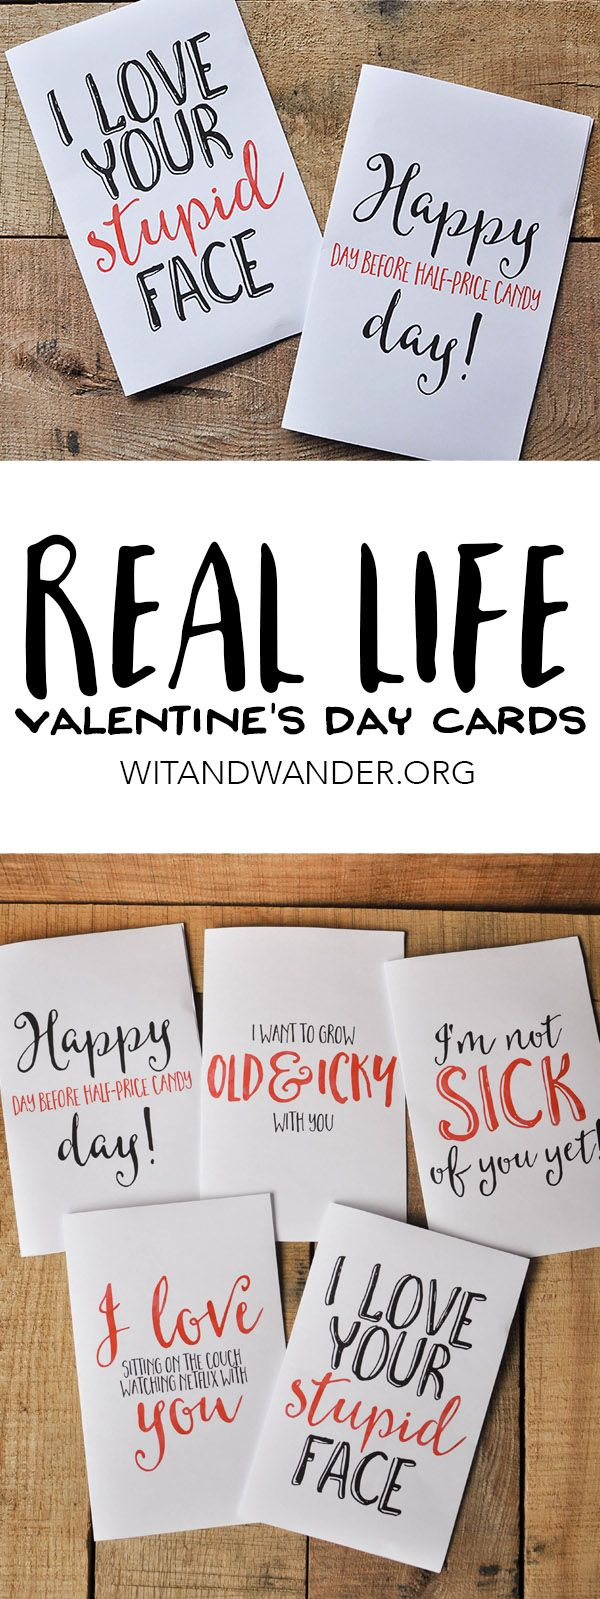 Funny anniversary cake quotes - Free Printable Sarcastic Valentine S Day Cards For Your Real Life Valentine Whose Love Doesn T